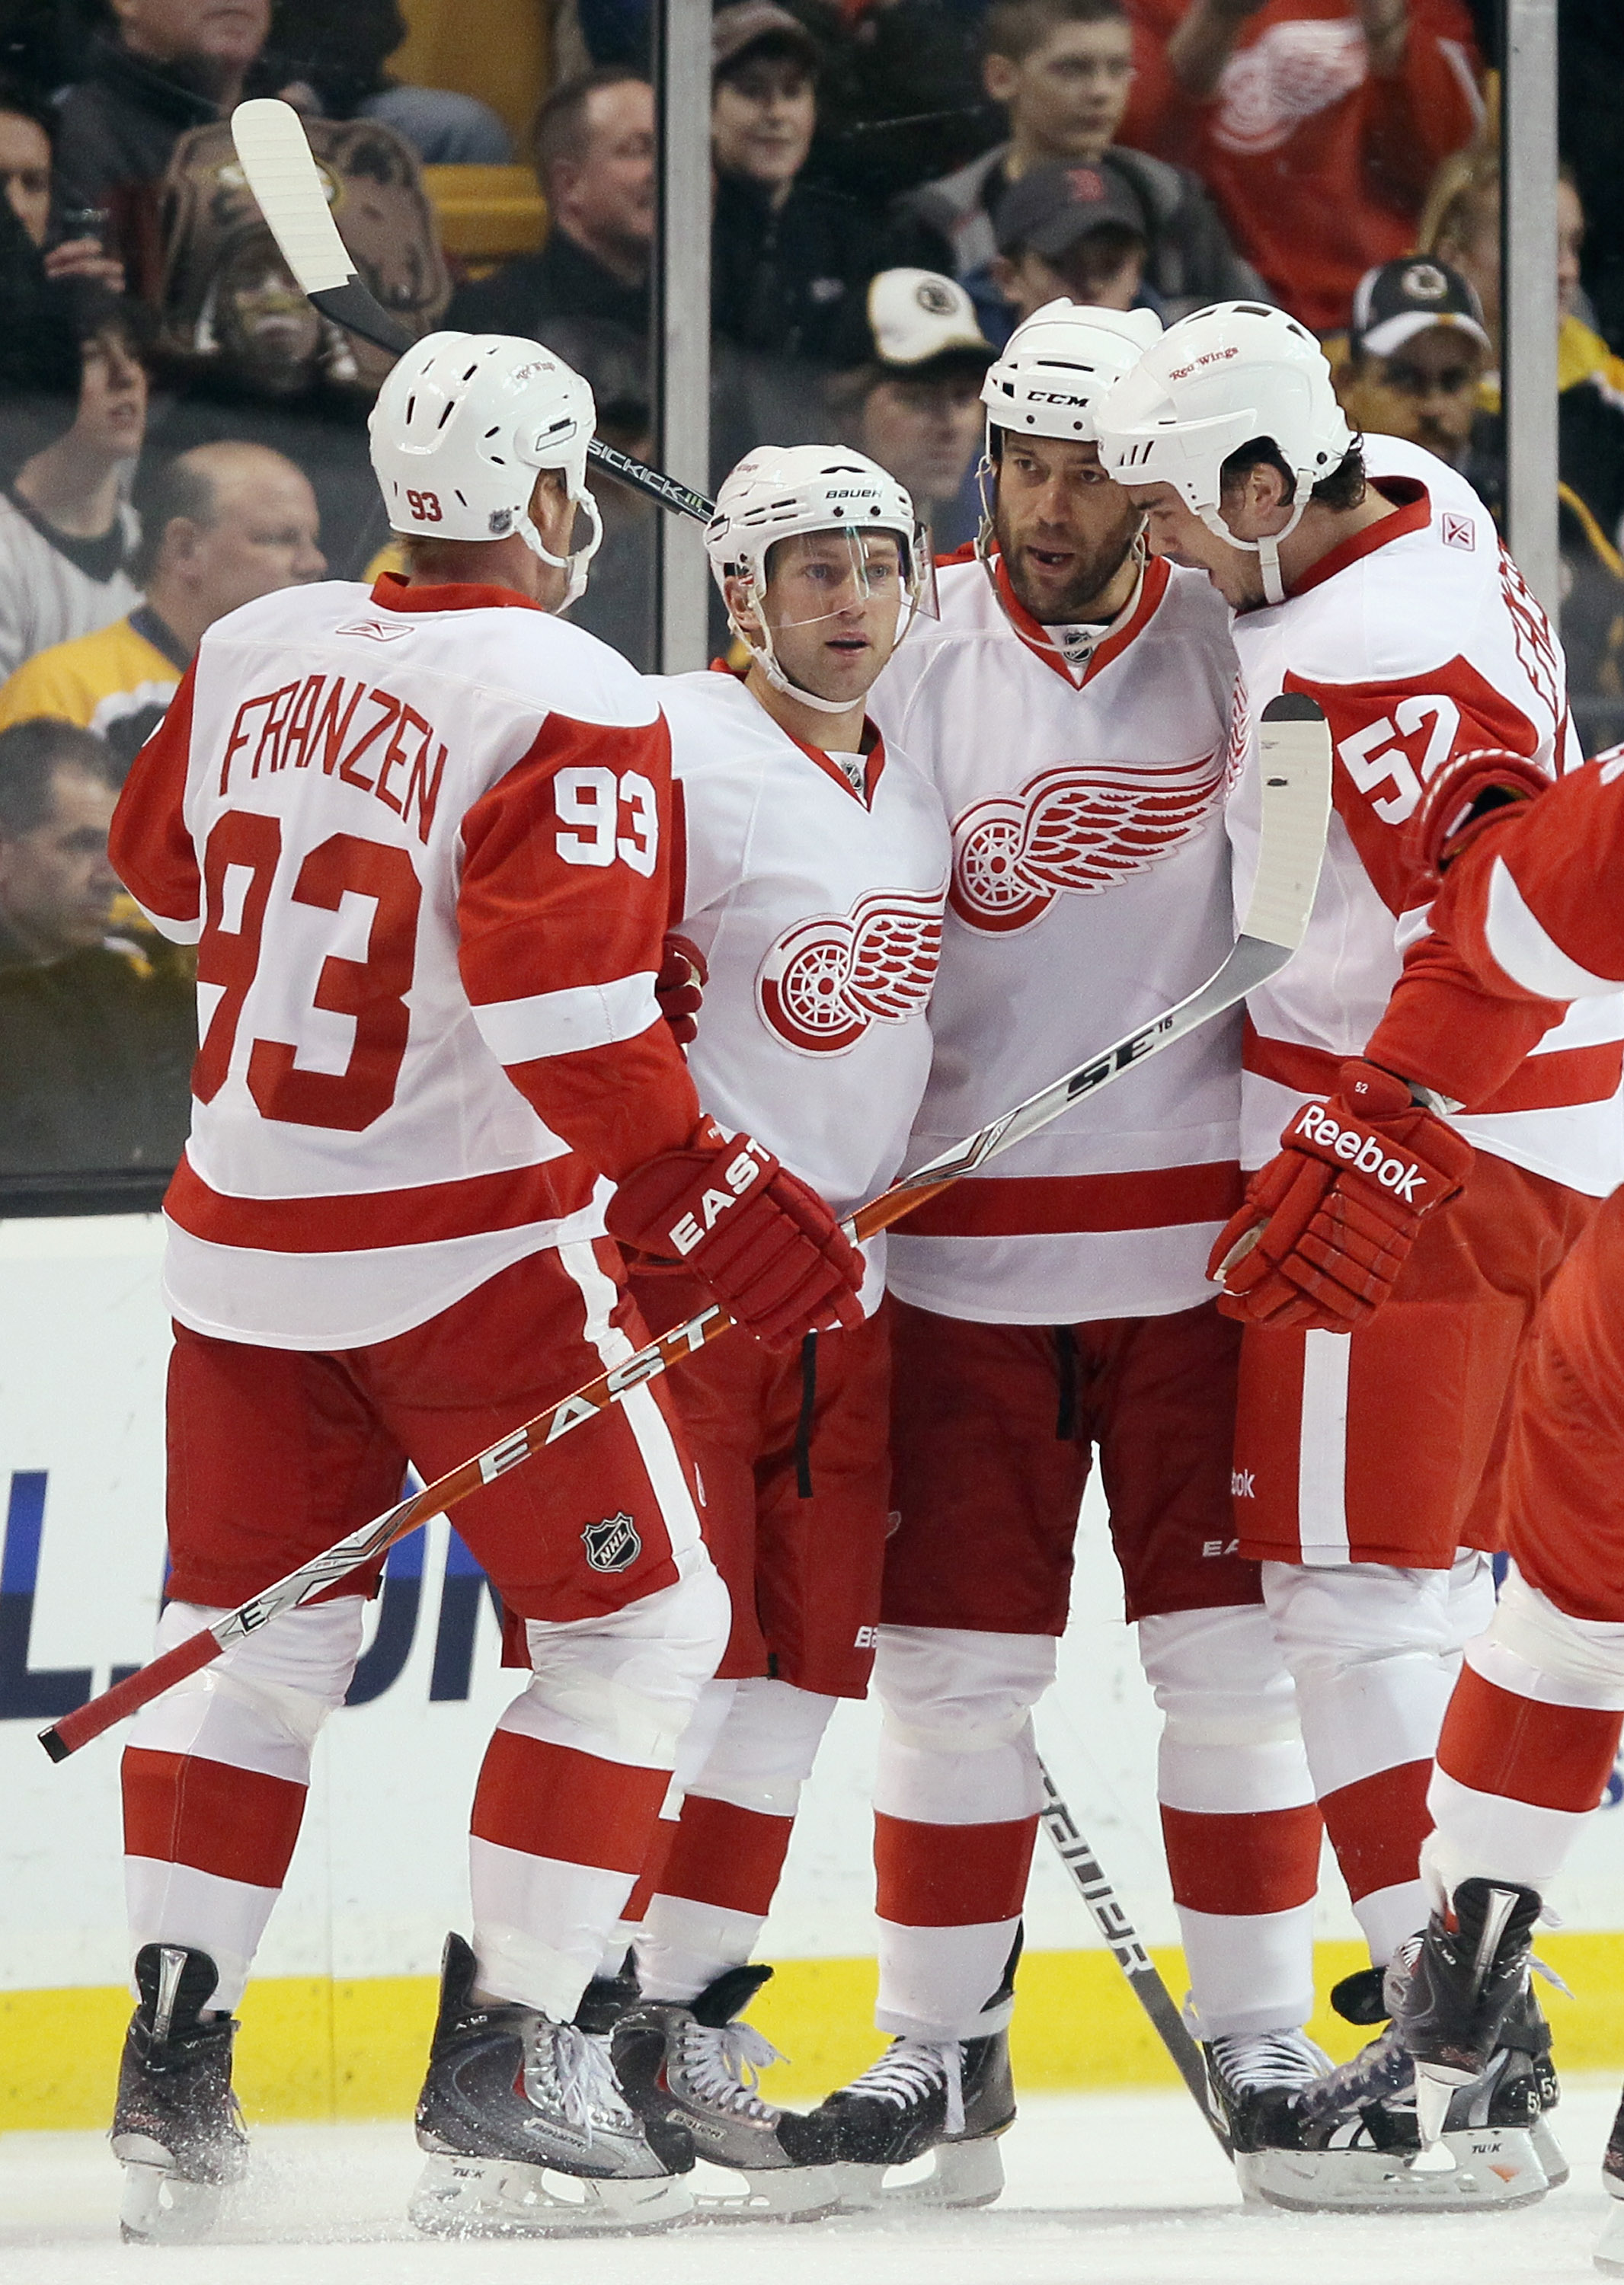 BOSTON, MA - FEBRUARY 11:  Todd Bertuzzi #44 of the Detroit Red Wings is congratulated by teammates Brian Rafalski #28,Johan Franzen #93 and Jonathan Ericsson #52 after Bertuzzi scored in the first period against the Boston Bruins on February 11, 2011 at